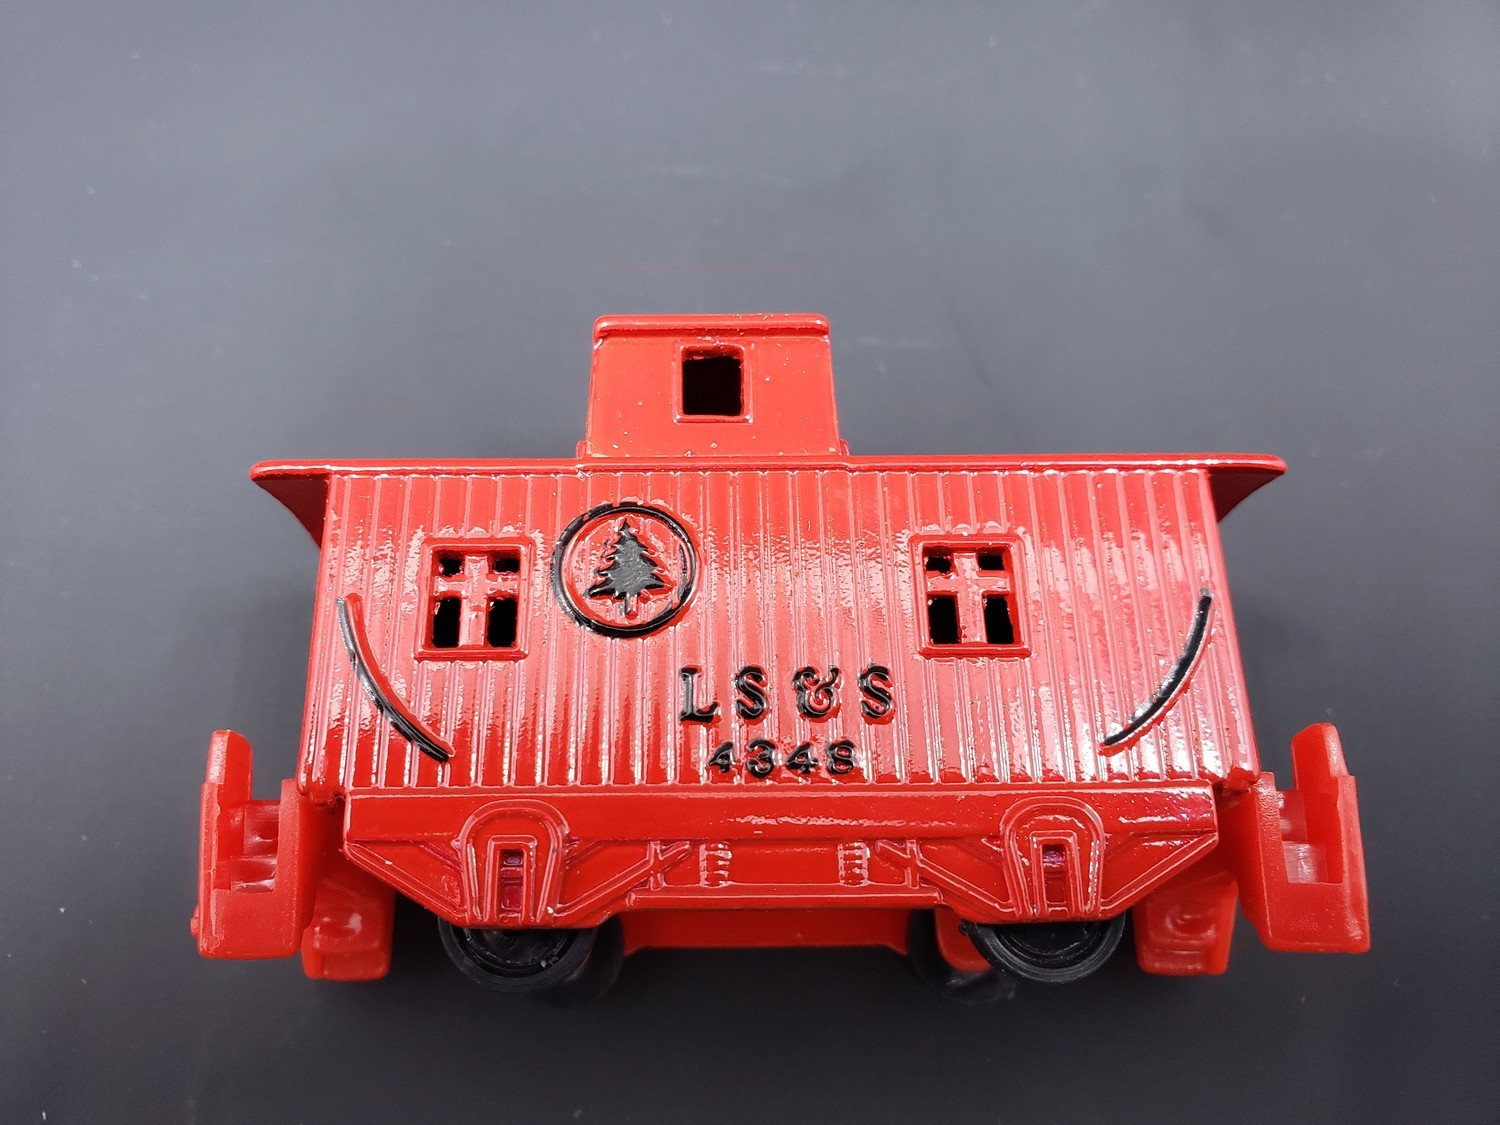 Caboose- Pencil Sharpener